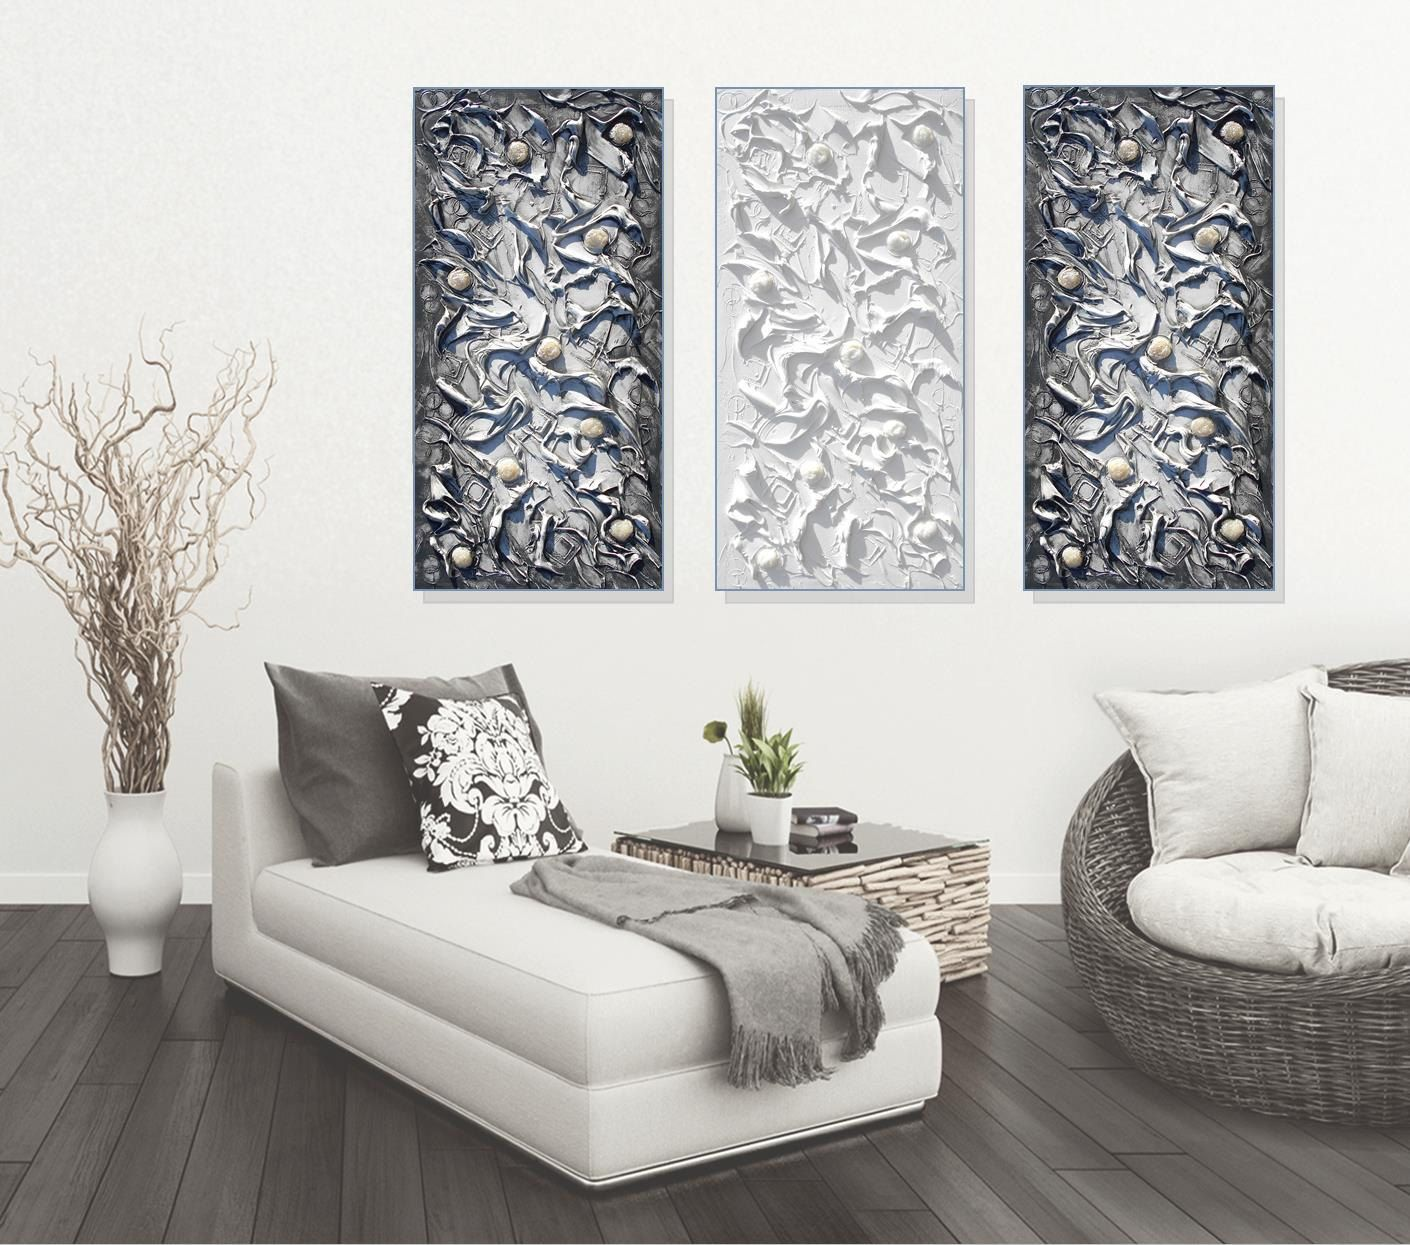 Texture Wall Paint For Living Room Black And White Painting Textured Wall Art Canvas Palette Knife